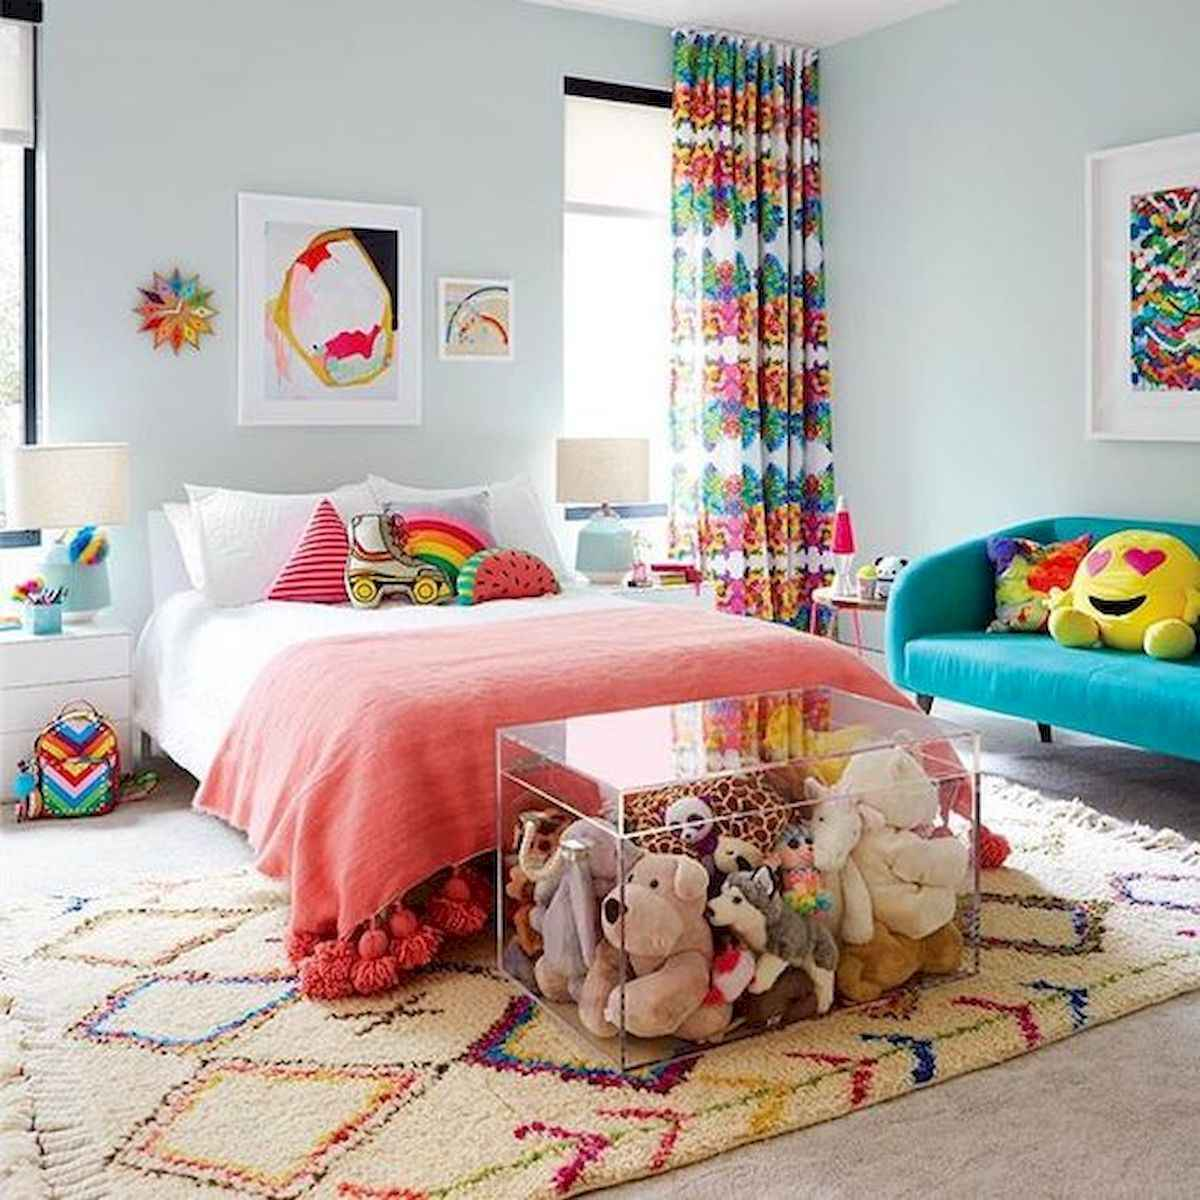 70+ Amazing Colorful Bedroom Decor Ideas And Remodel for Summer Project (11)